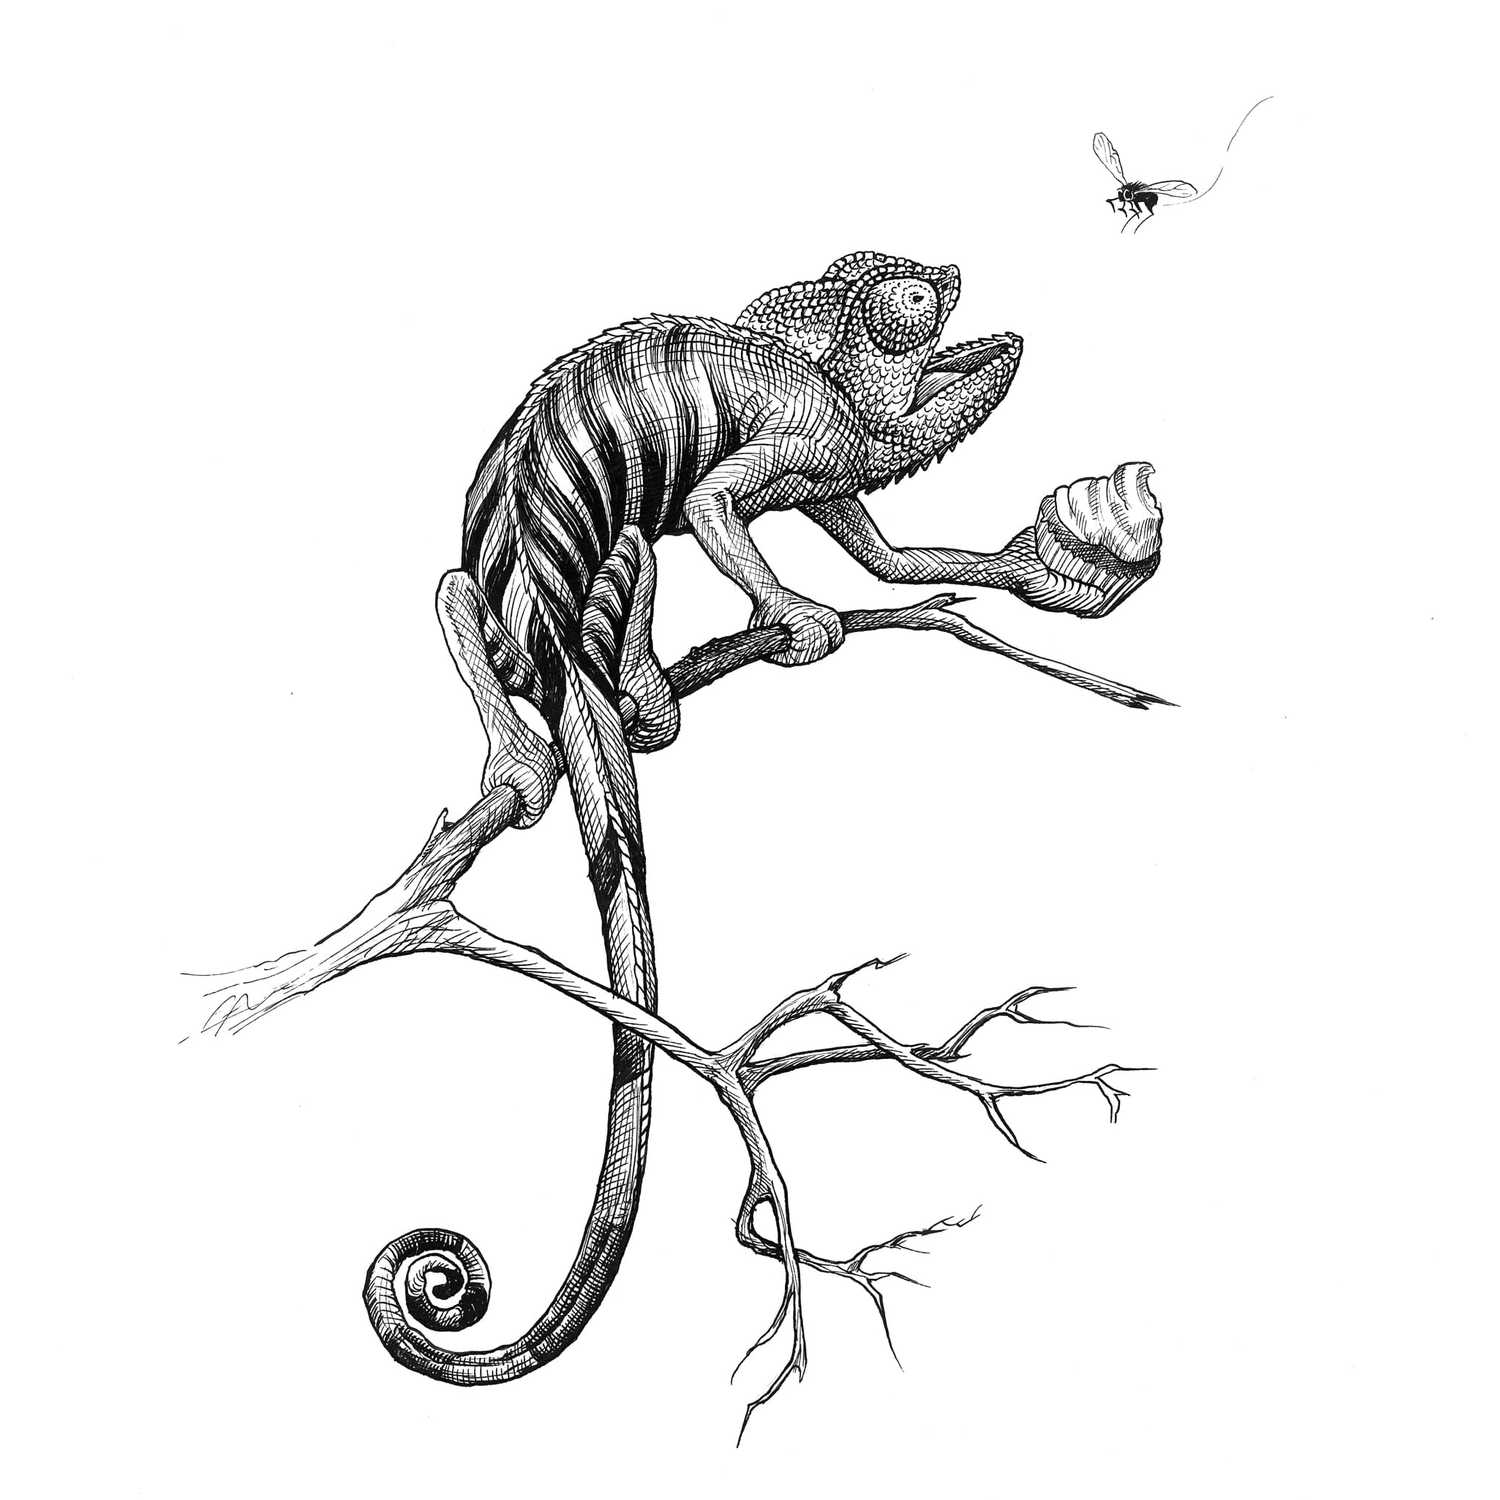 Cheeky Chameleon Clutching a Cherry Cupcake Intricate Ink-0